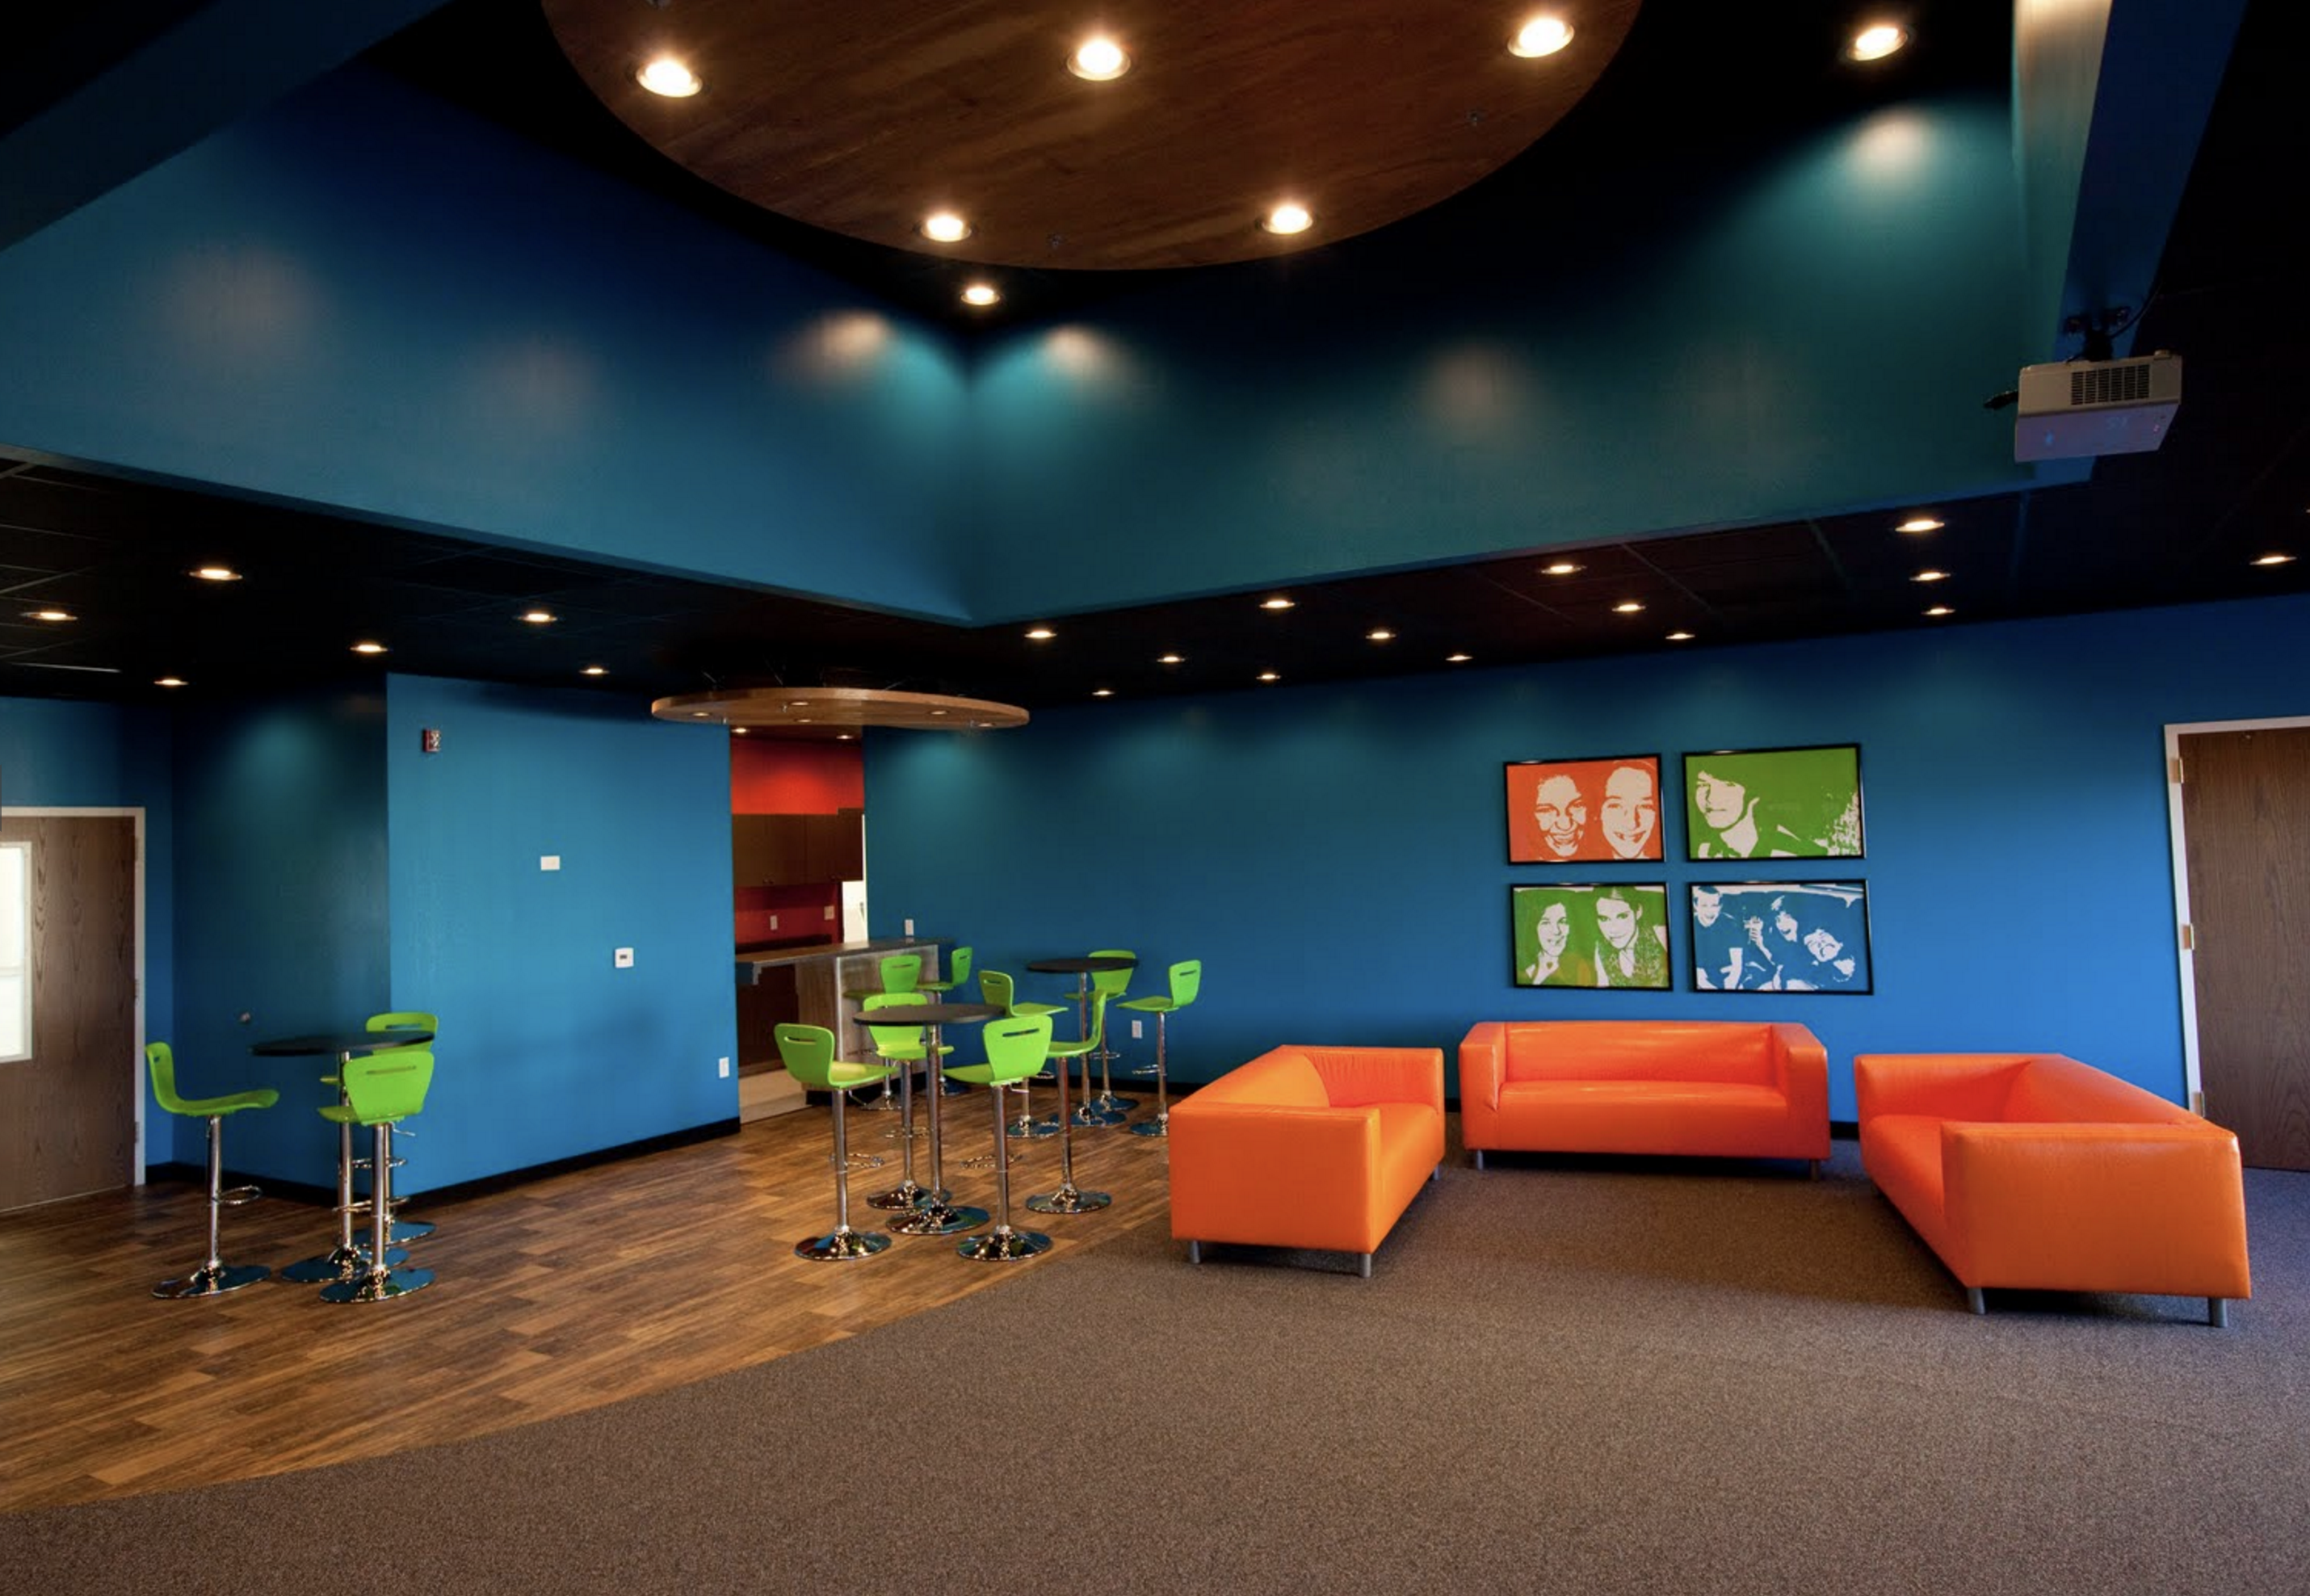 Rethinking Youth Ministry Room And Cafe Decor Classroom Essentials Online